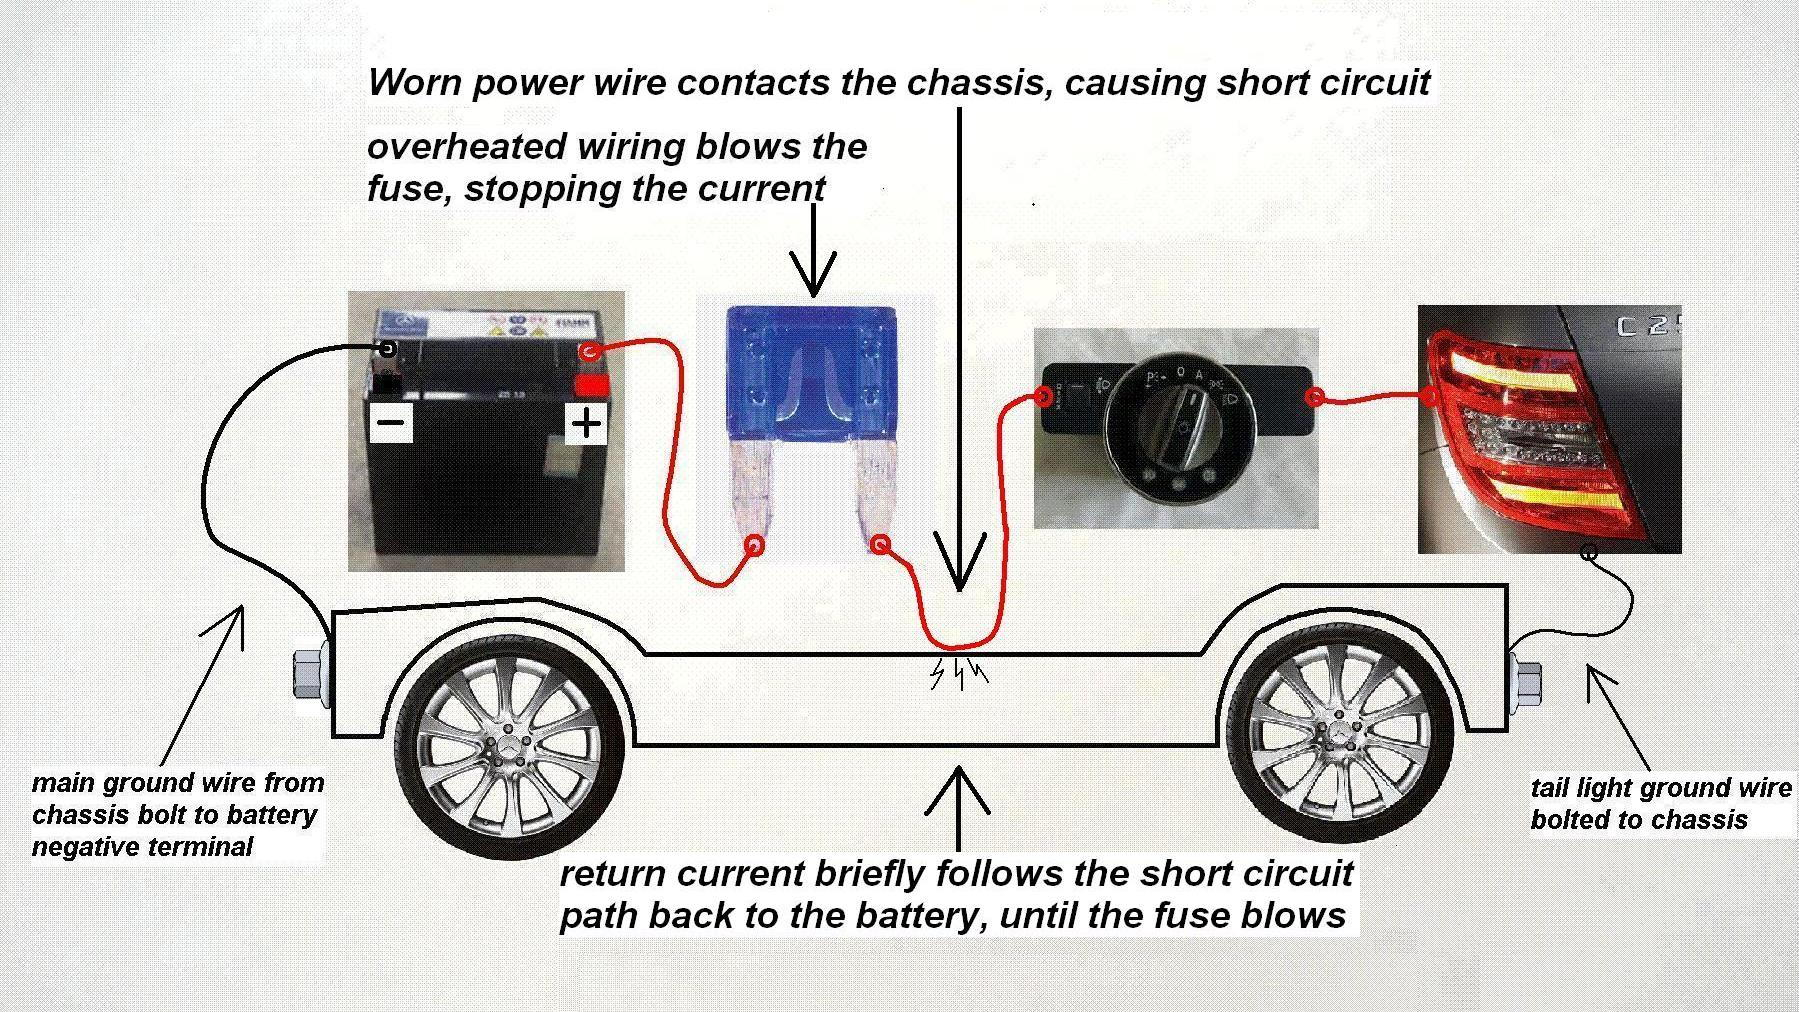 Car Fuse Box Short Circuit Wiring Library Diagram Mercedes Benz C Class Diagrams And Commonly Blown Fuses